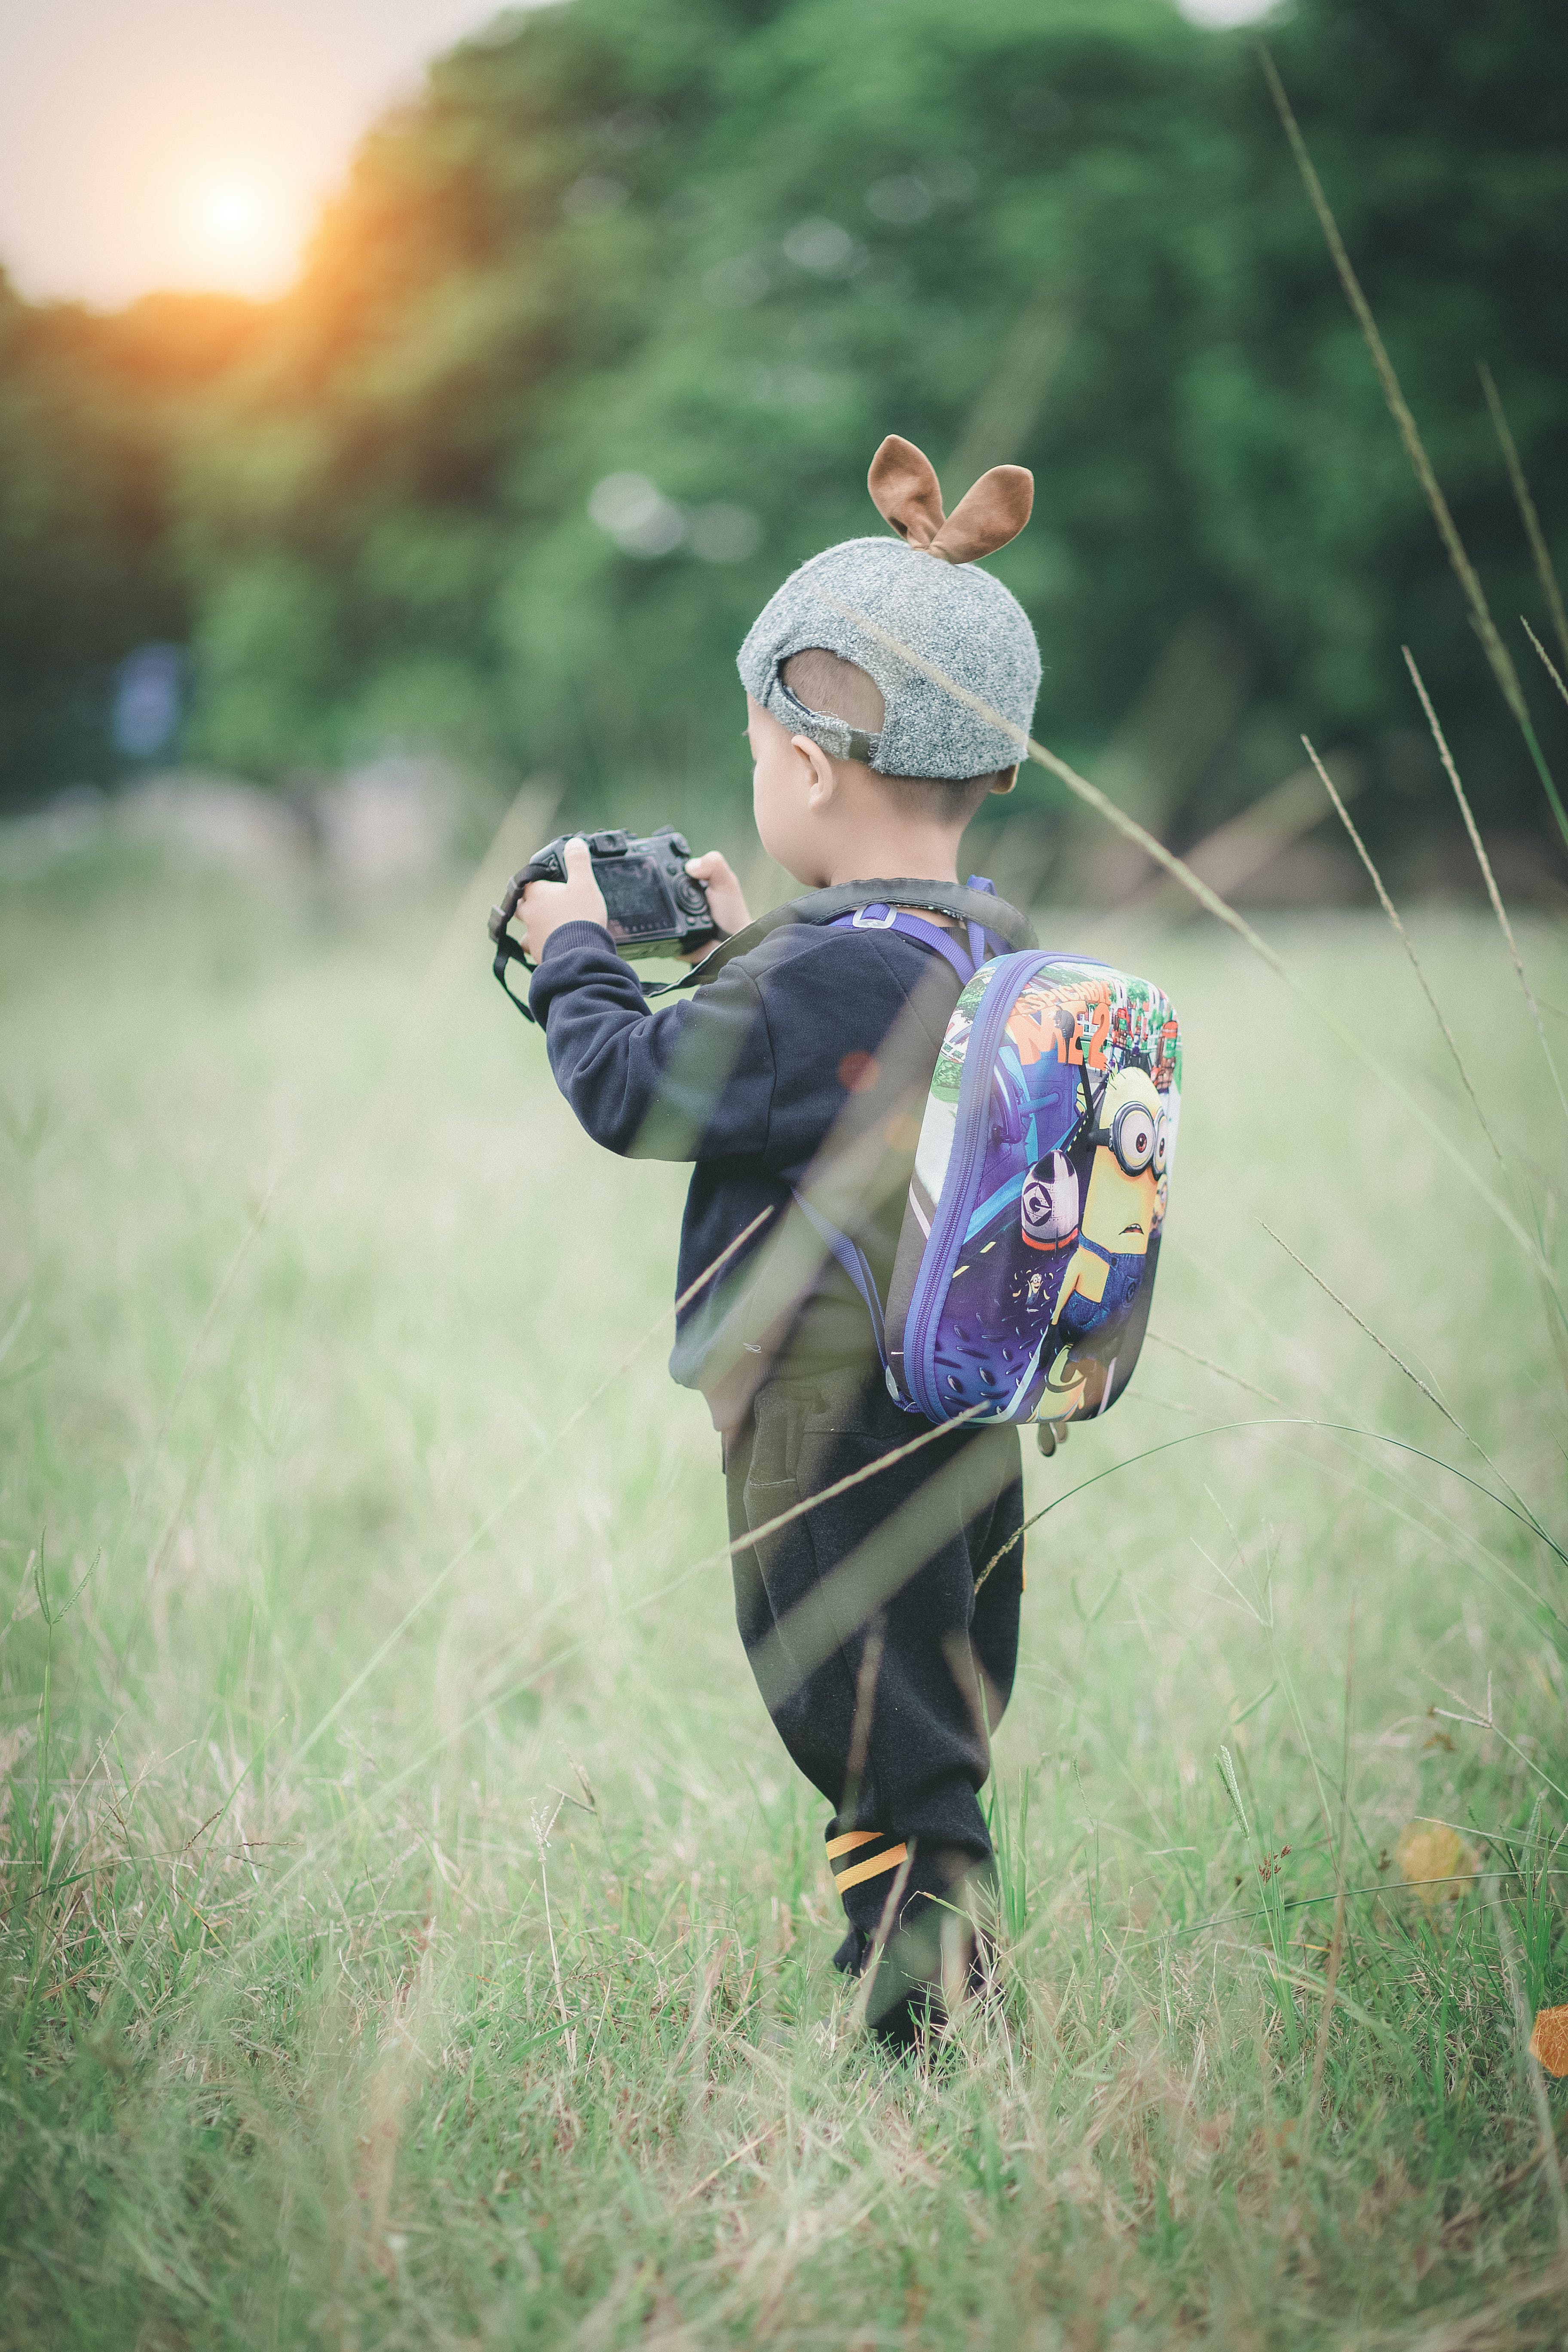 Boy Carrying Backpack Holding Camera Standing on Green Grass